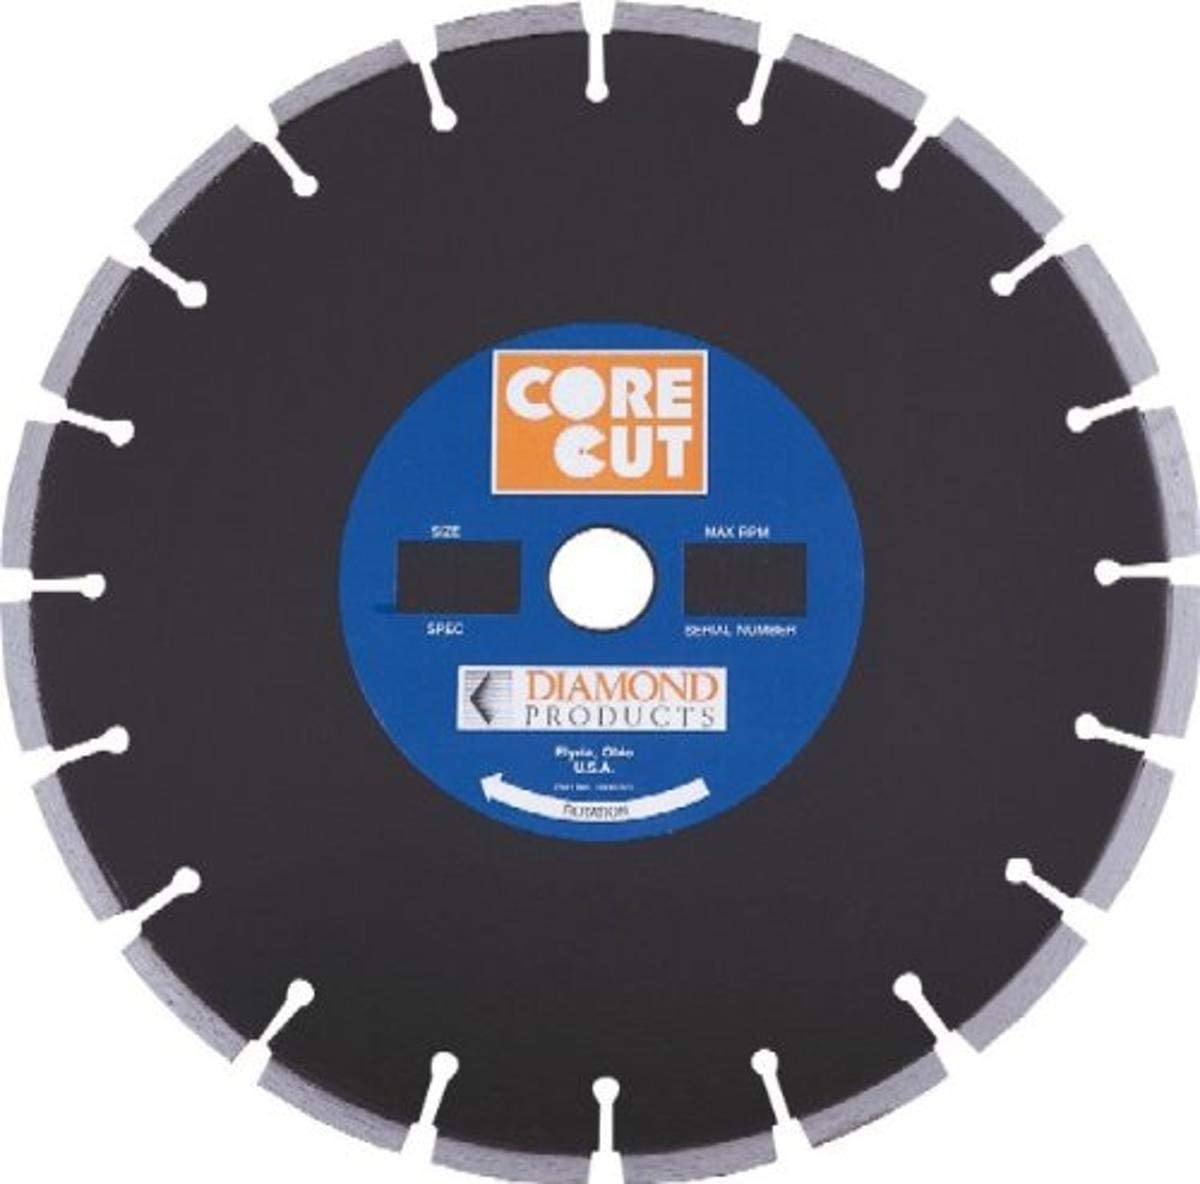 Diamond Products Core Cut 40803 24-Inch by 0.140 by 1-Inch Premium Black Dry or Wet Masonry Blade